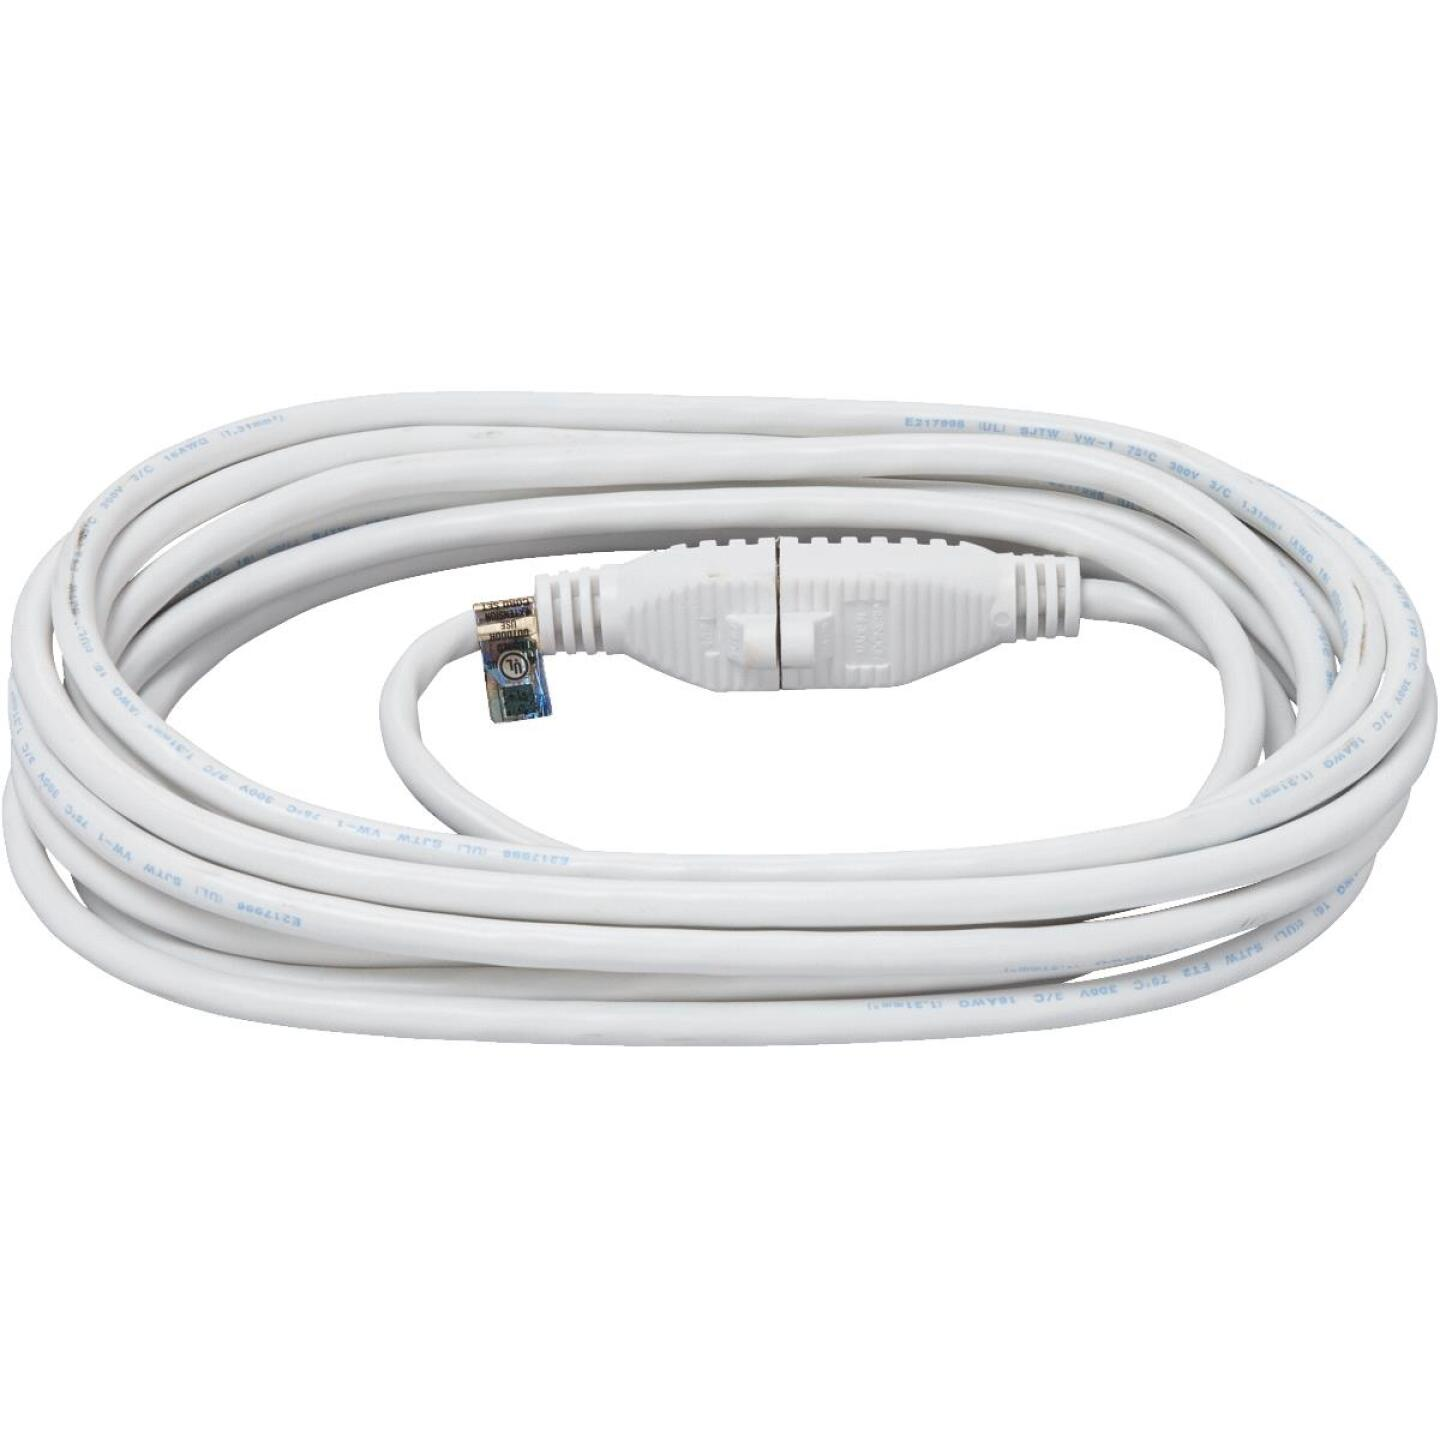 Do it Best 20 Ft. 16/3 Medium-Duty White Patio Extension Cord Image 2